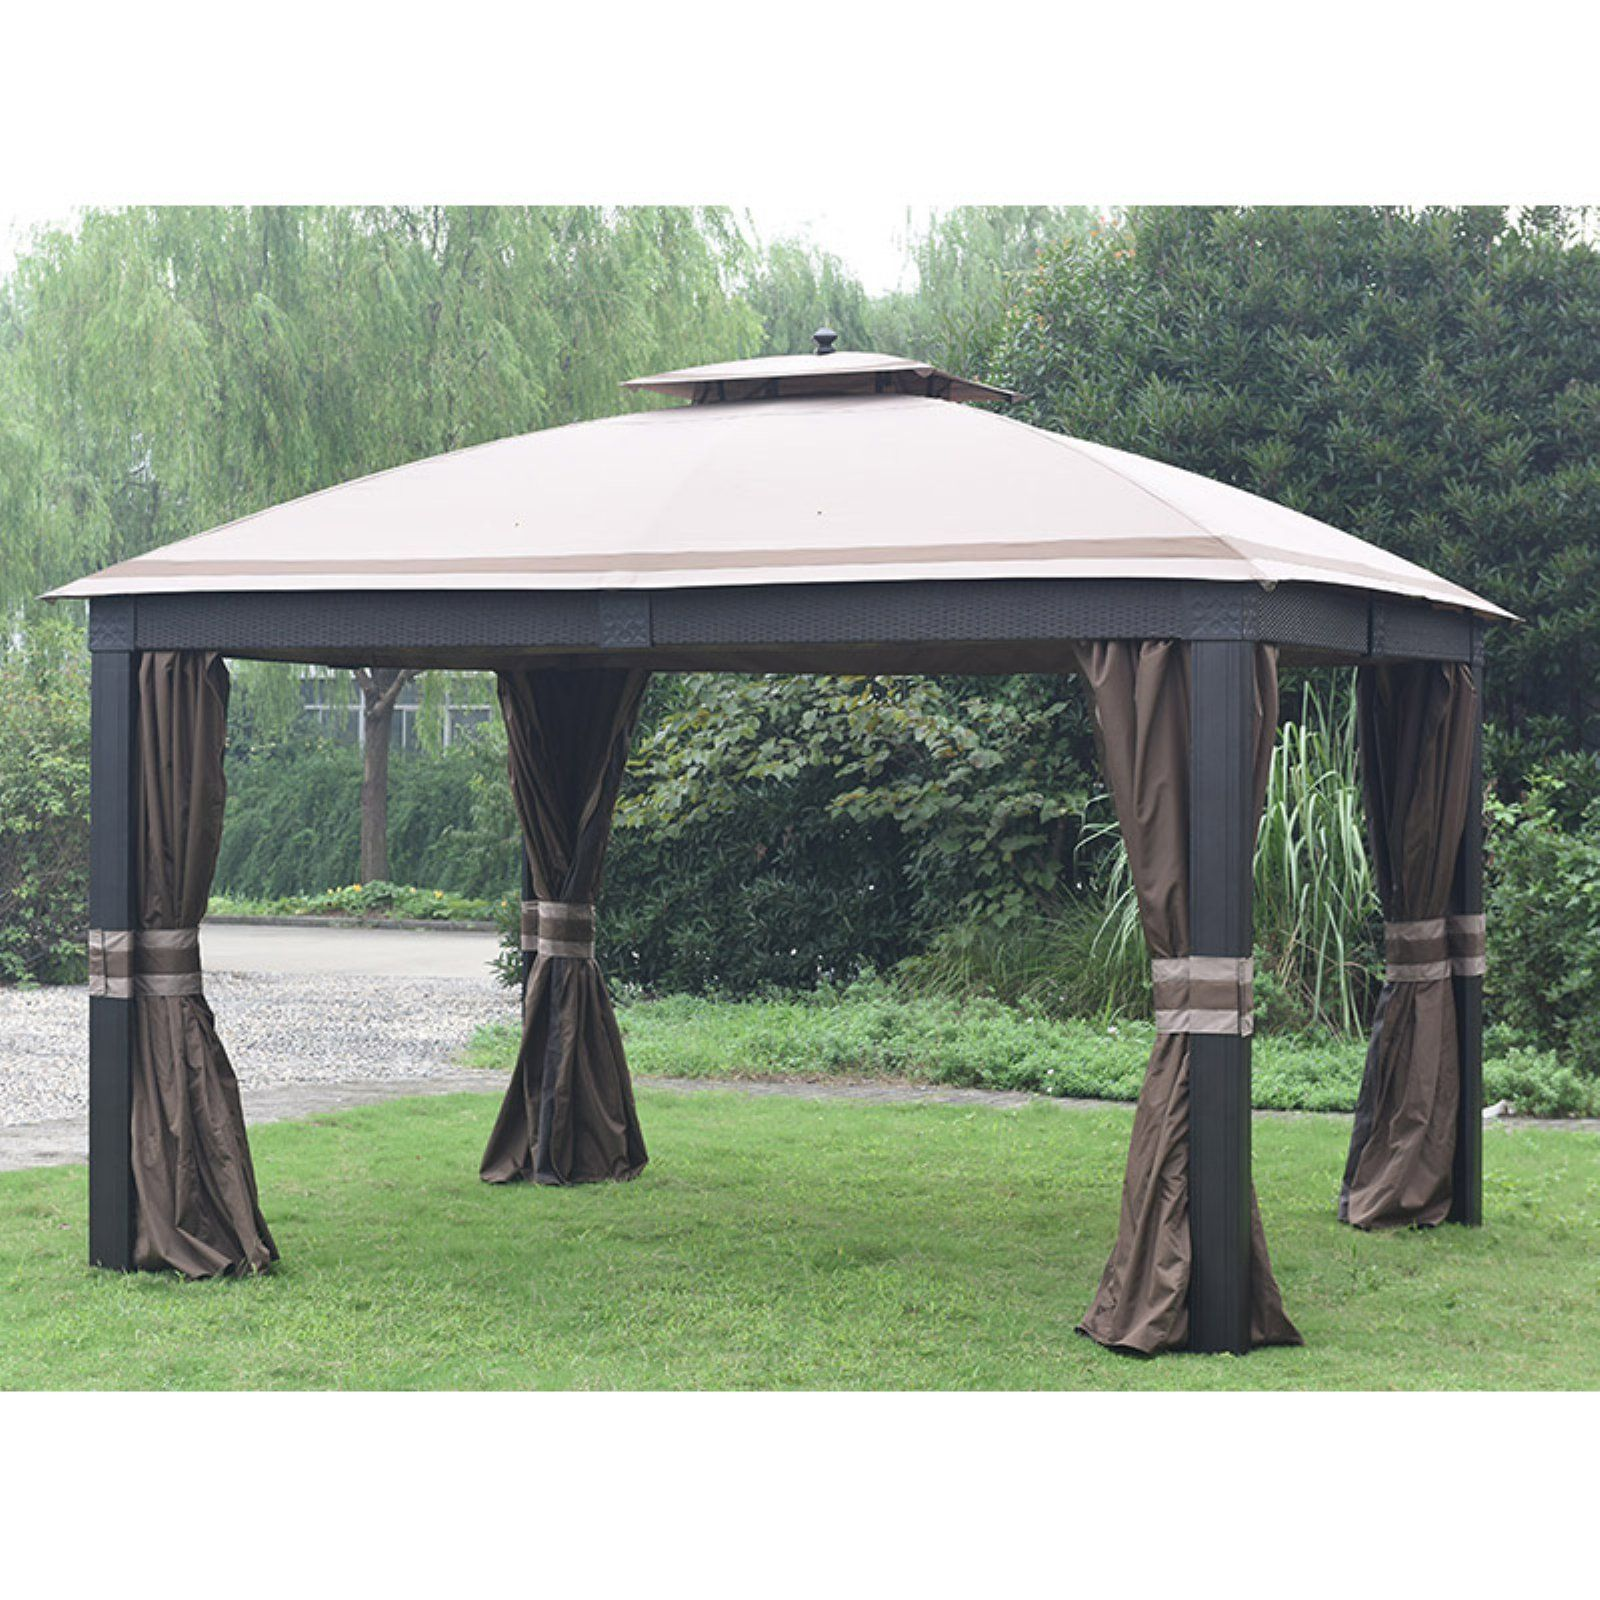 Sunjoy 12 X 10 Ft Replacement Canopy Cover For L Gz815pco F Wicker Gazebo Gazebo Replacement Canopy Gazebo Gazebo Big Lots